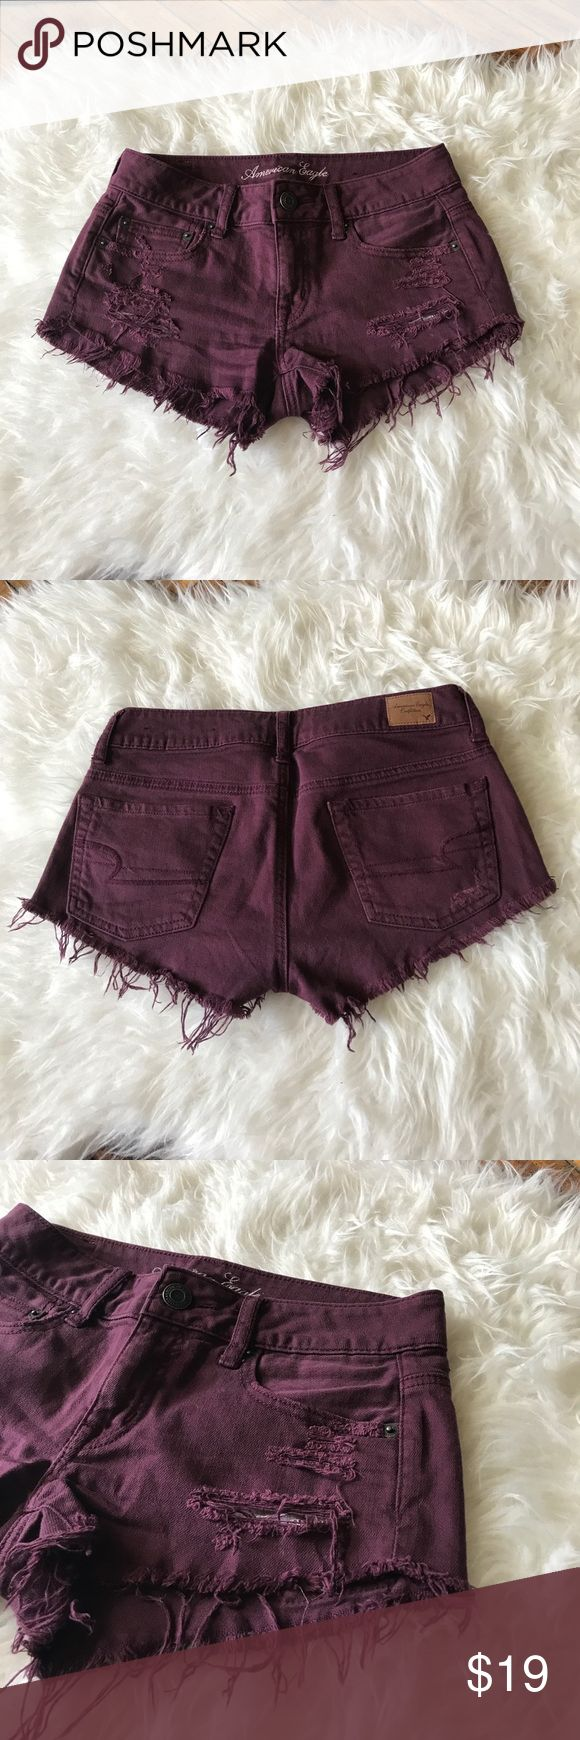 AEO Maroon shorts Maroon color they are like new; worn twice. American Eagle Outfitters Shorts Jean Shorts